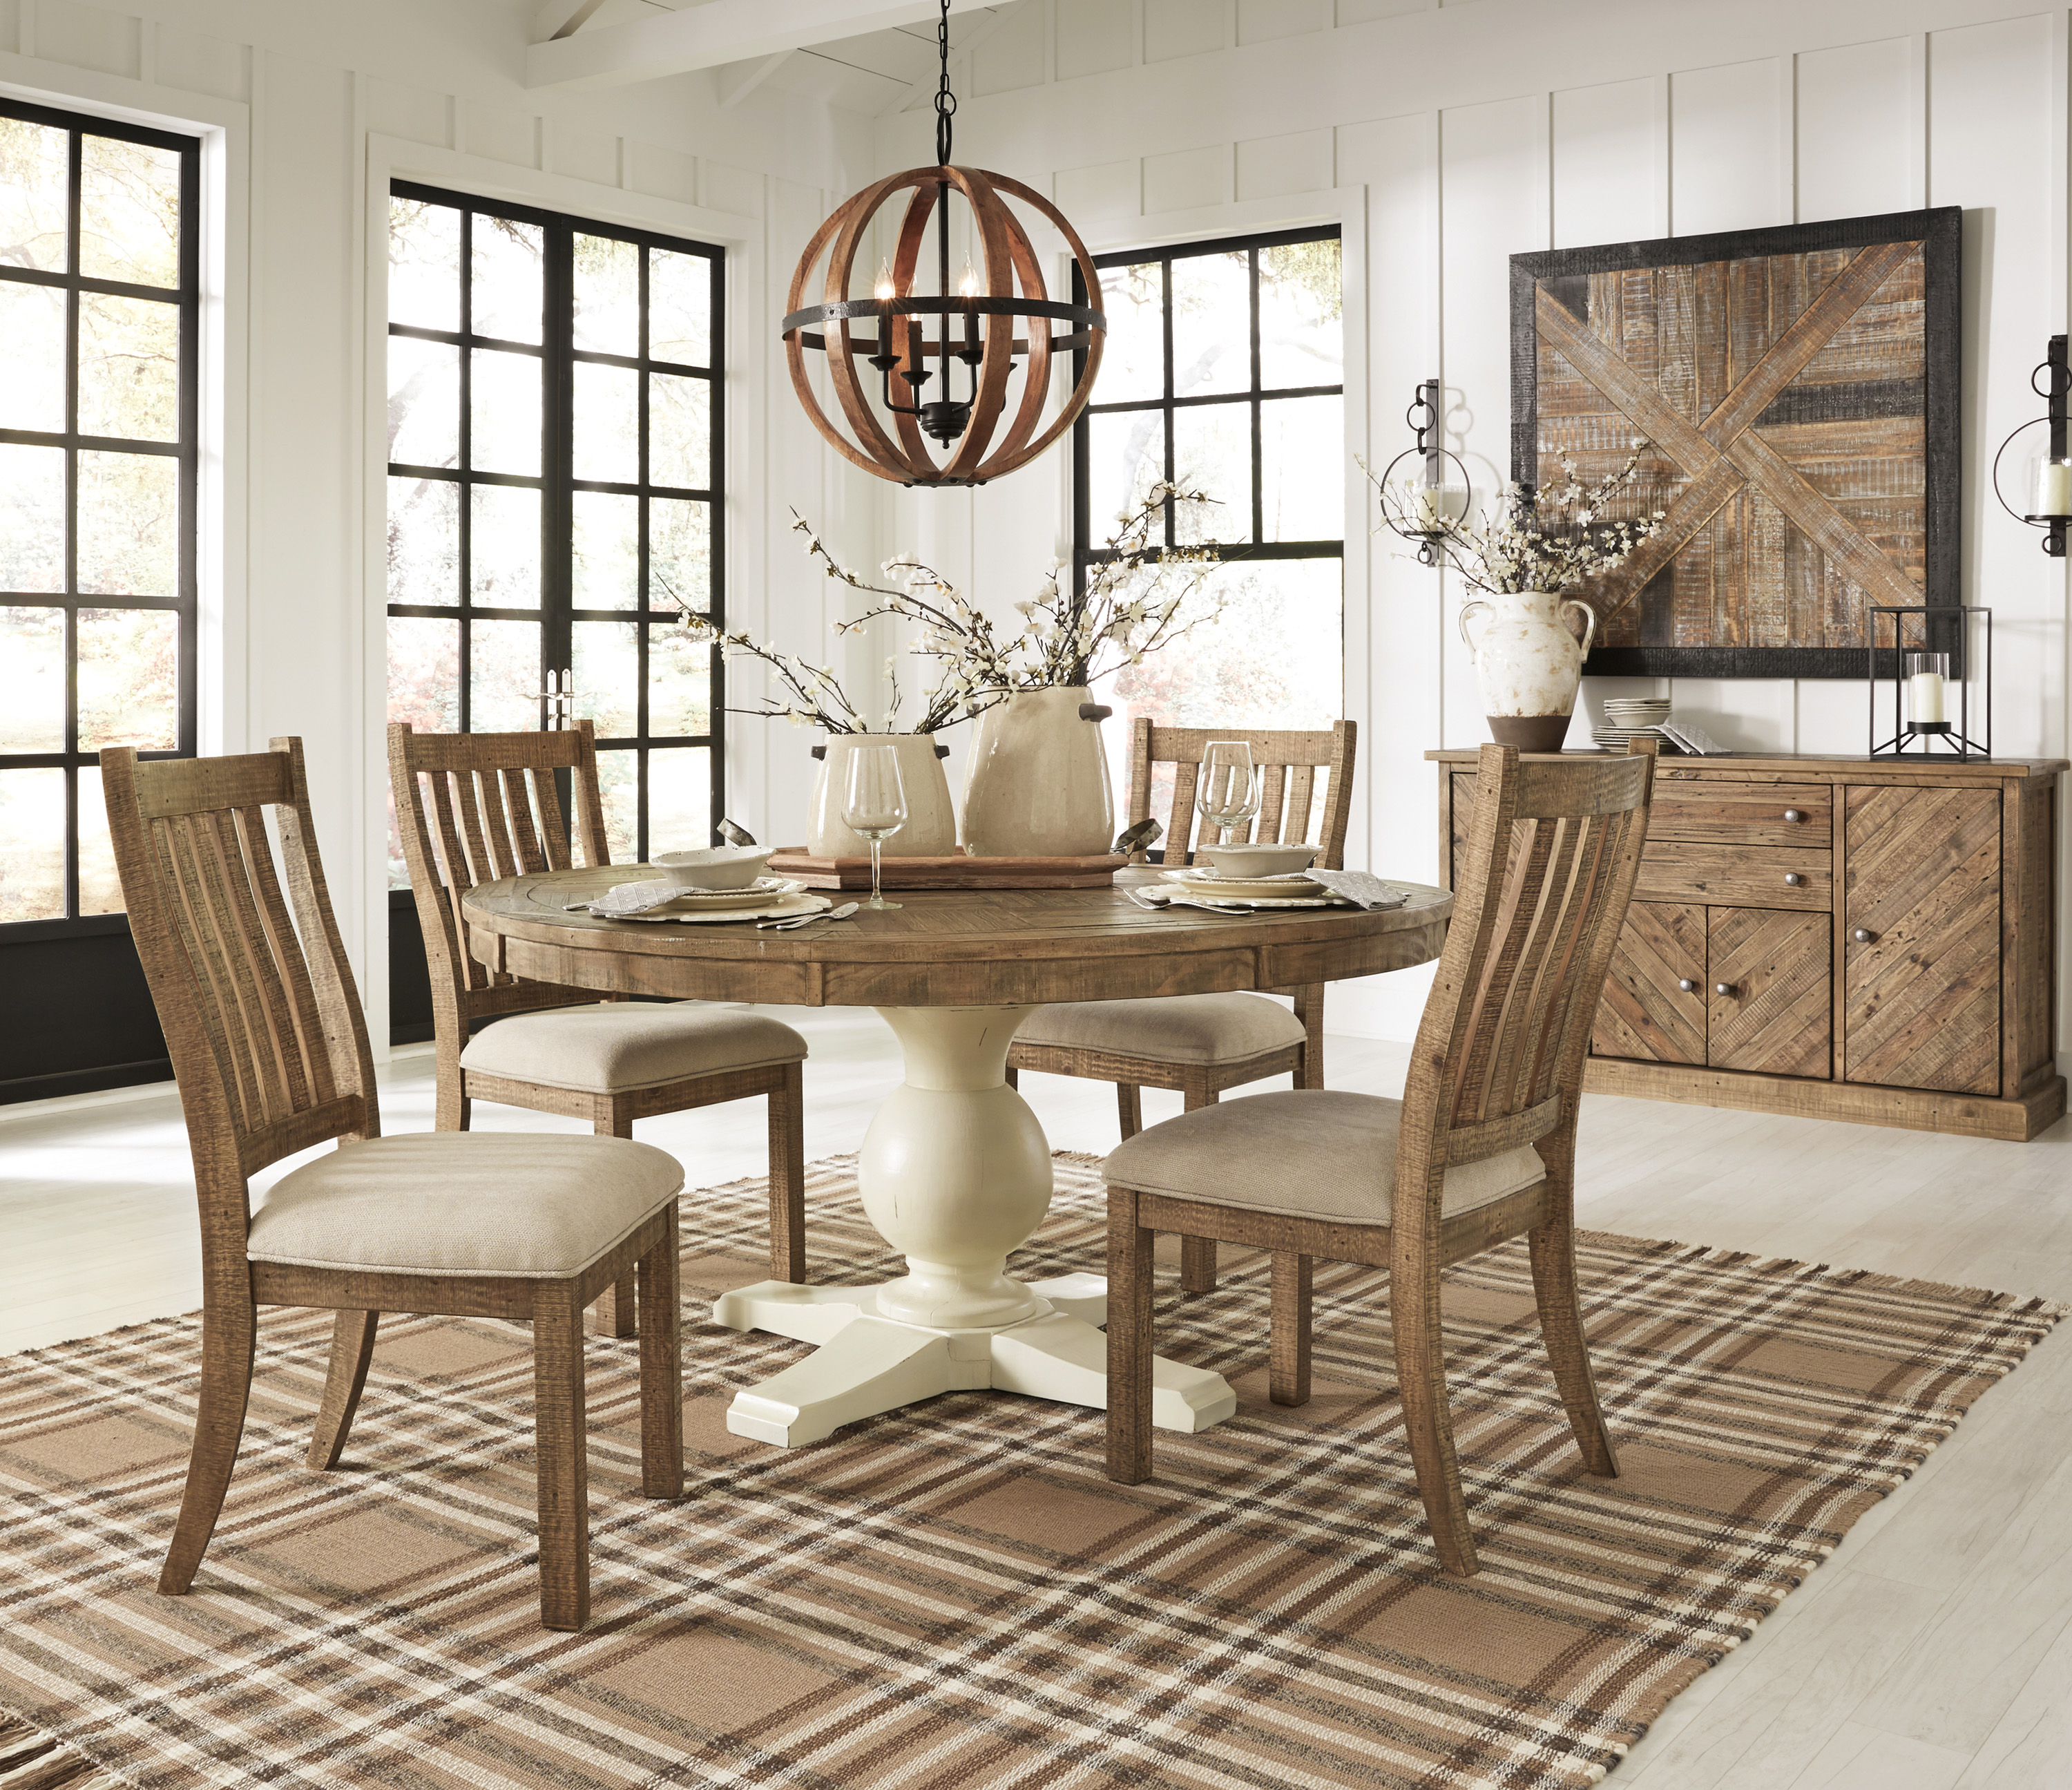 Grindleburg Dining Room Table Round: All American Mattress & Furniture